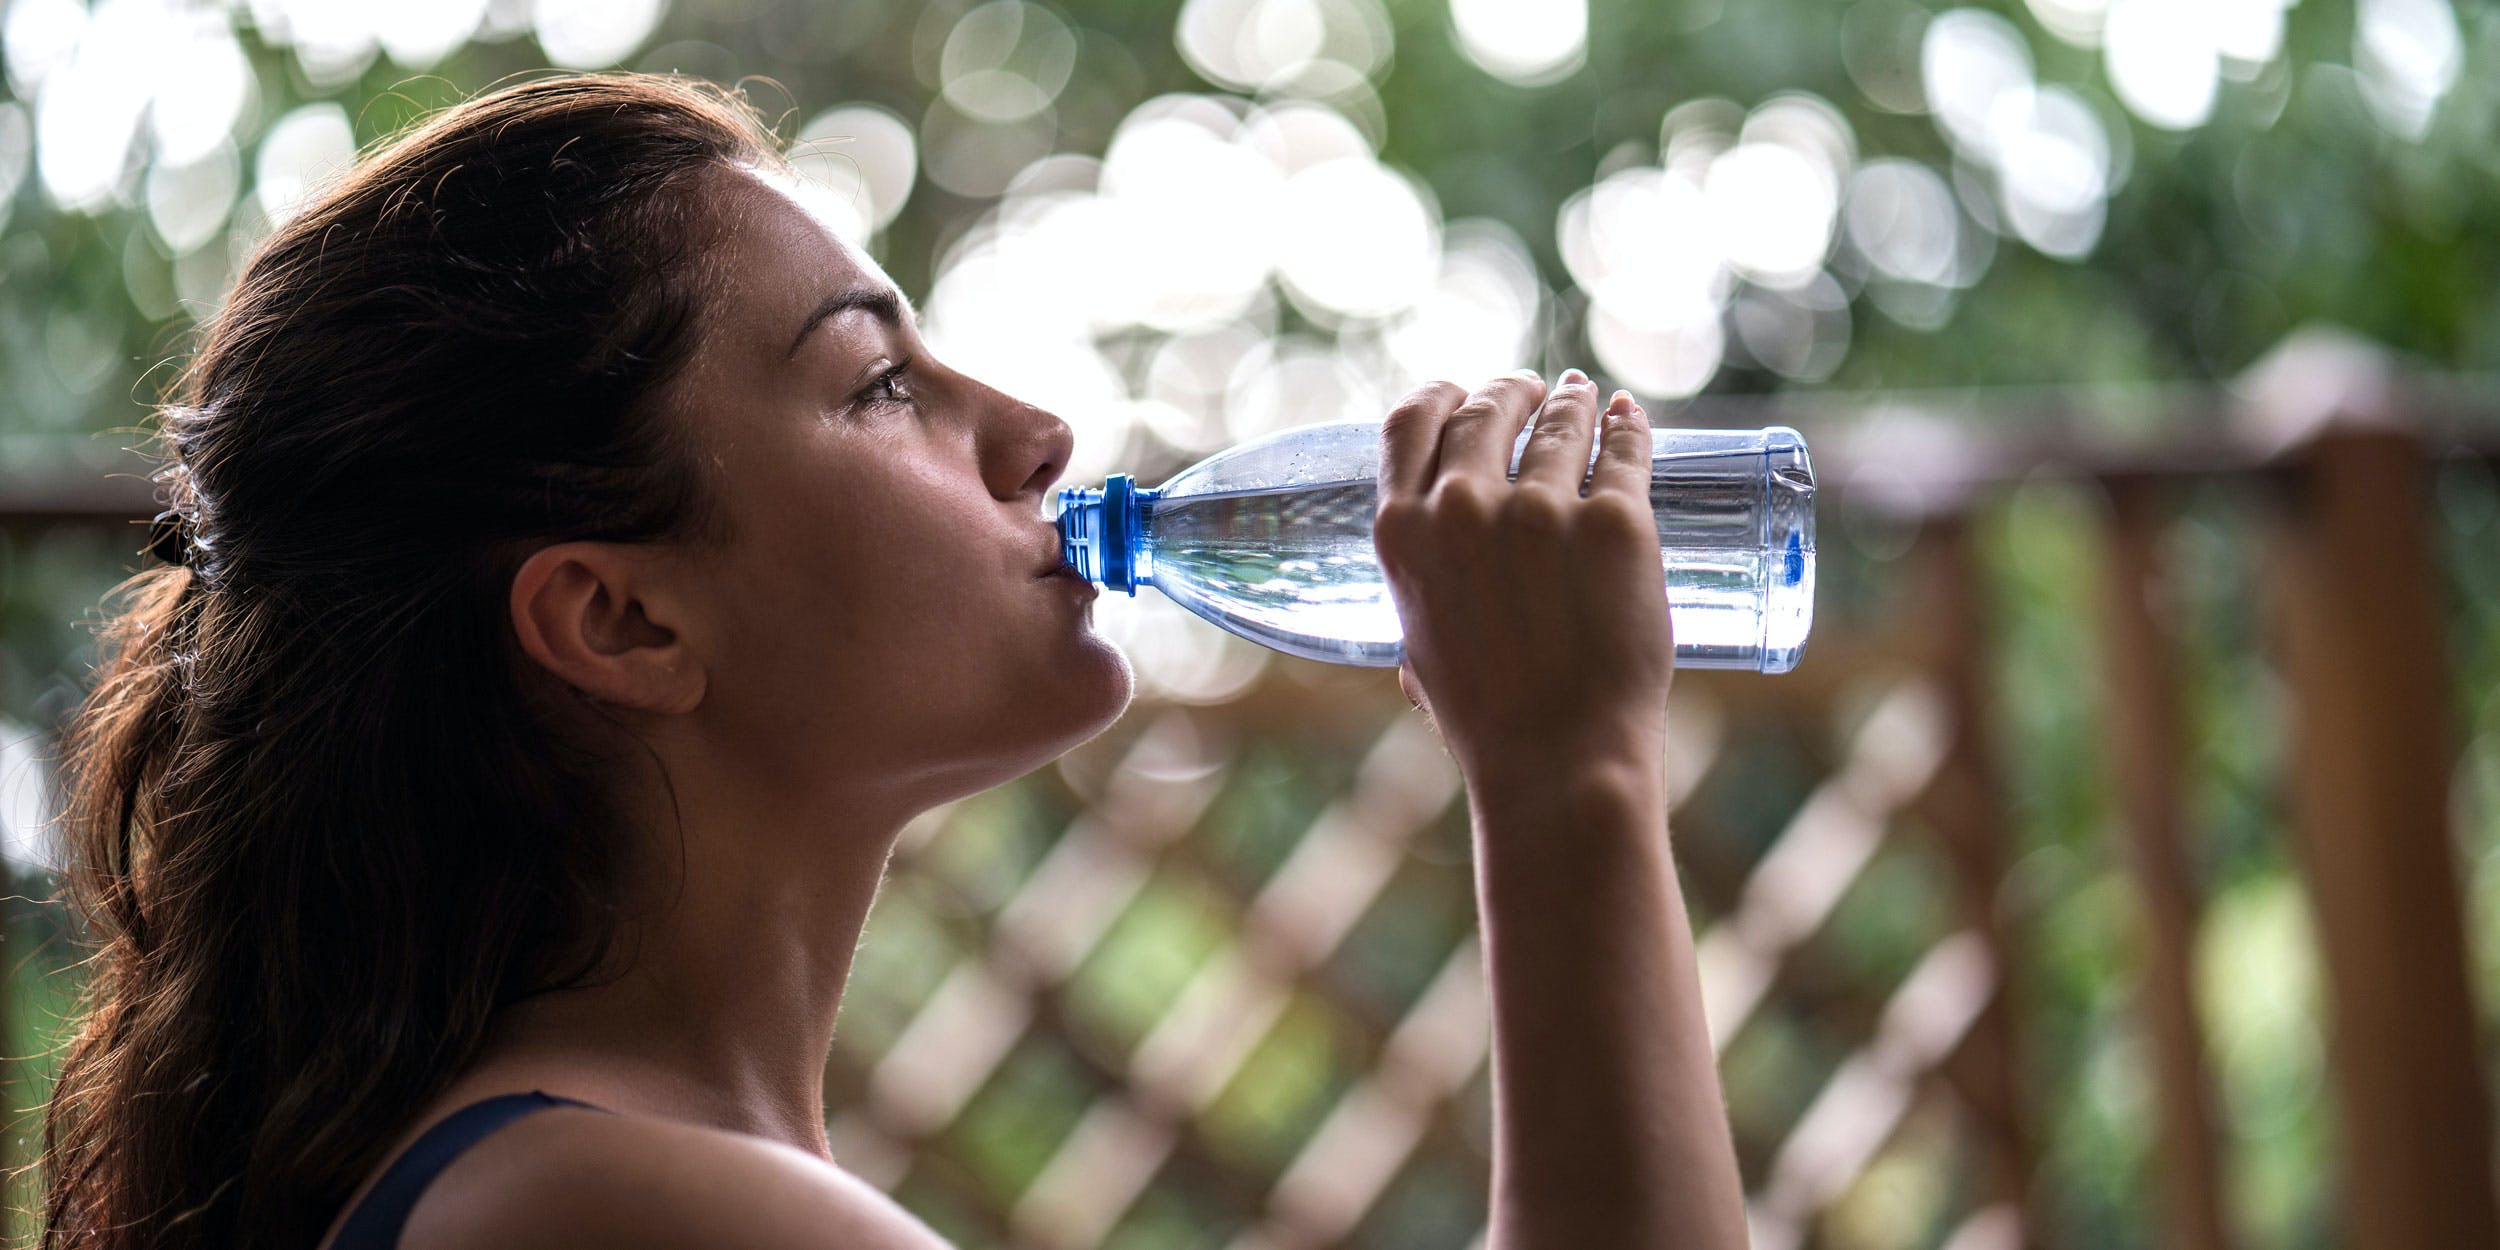 A woman drinks water, a common mistake for people who want to pass a THC urine test